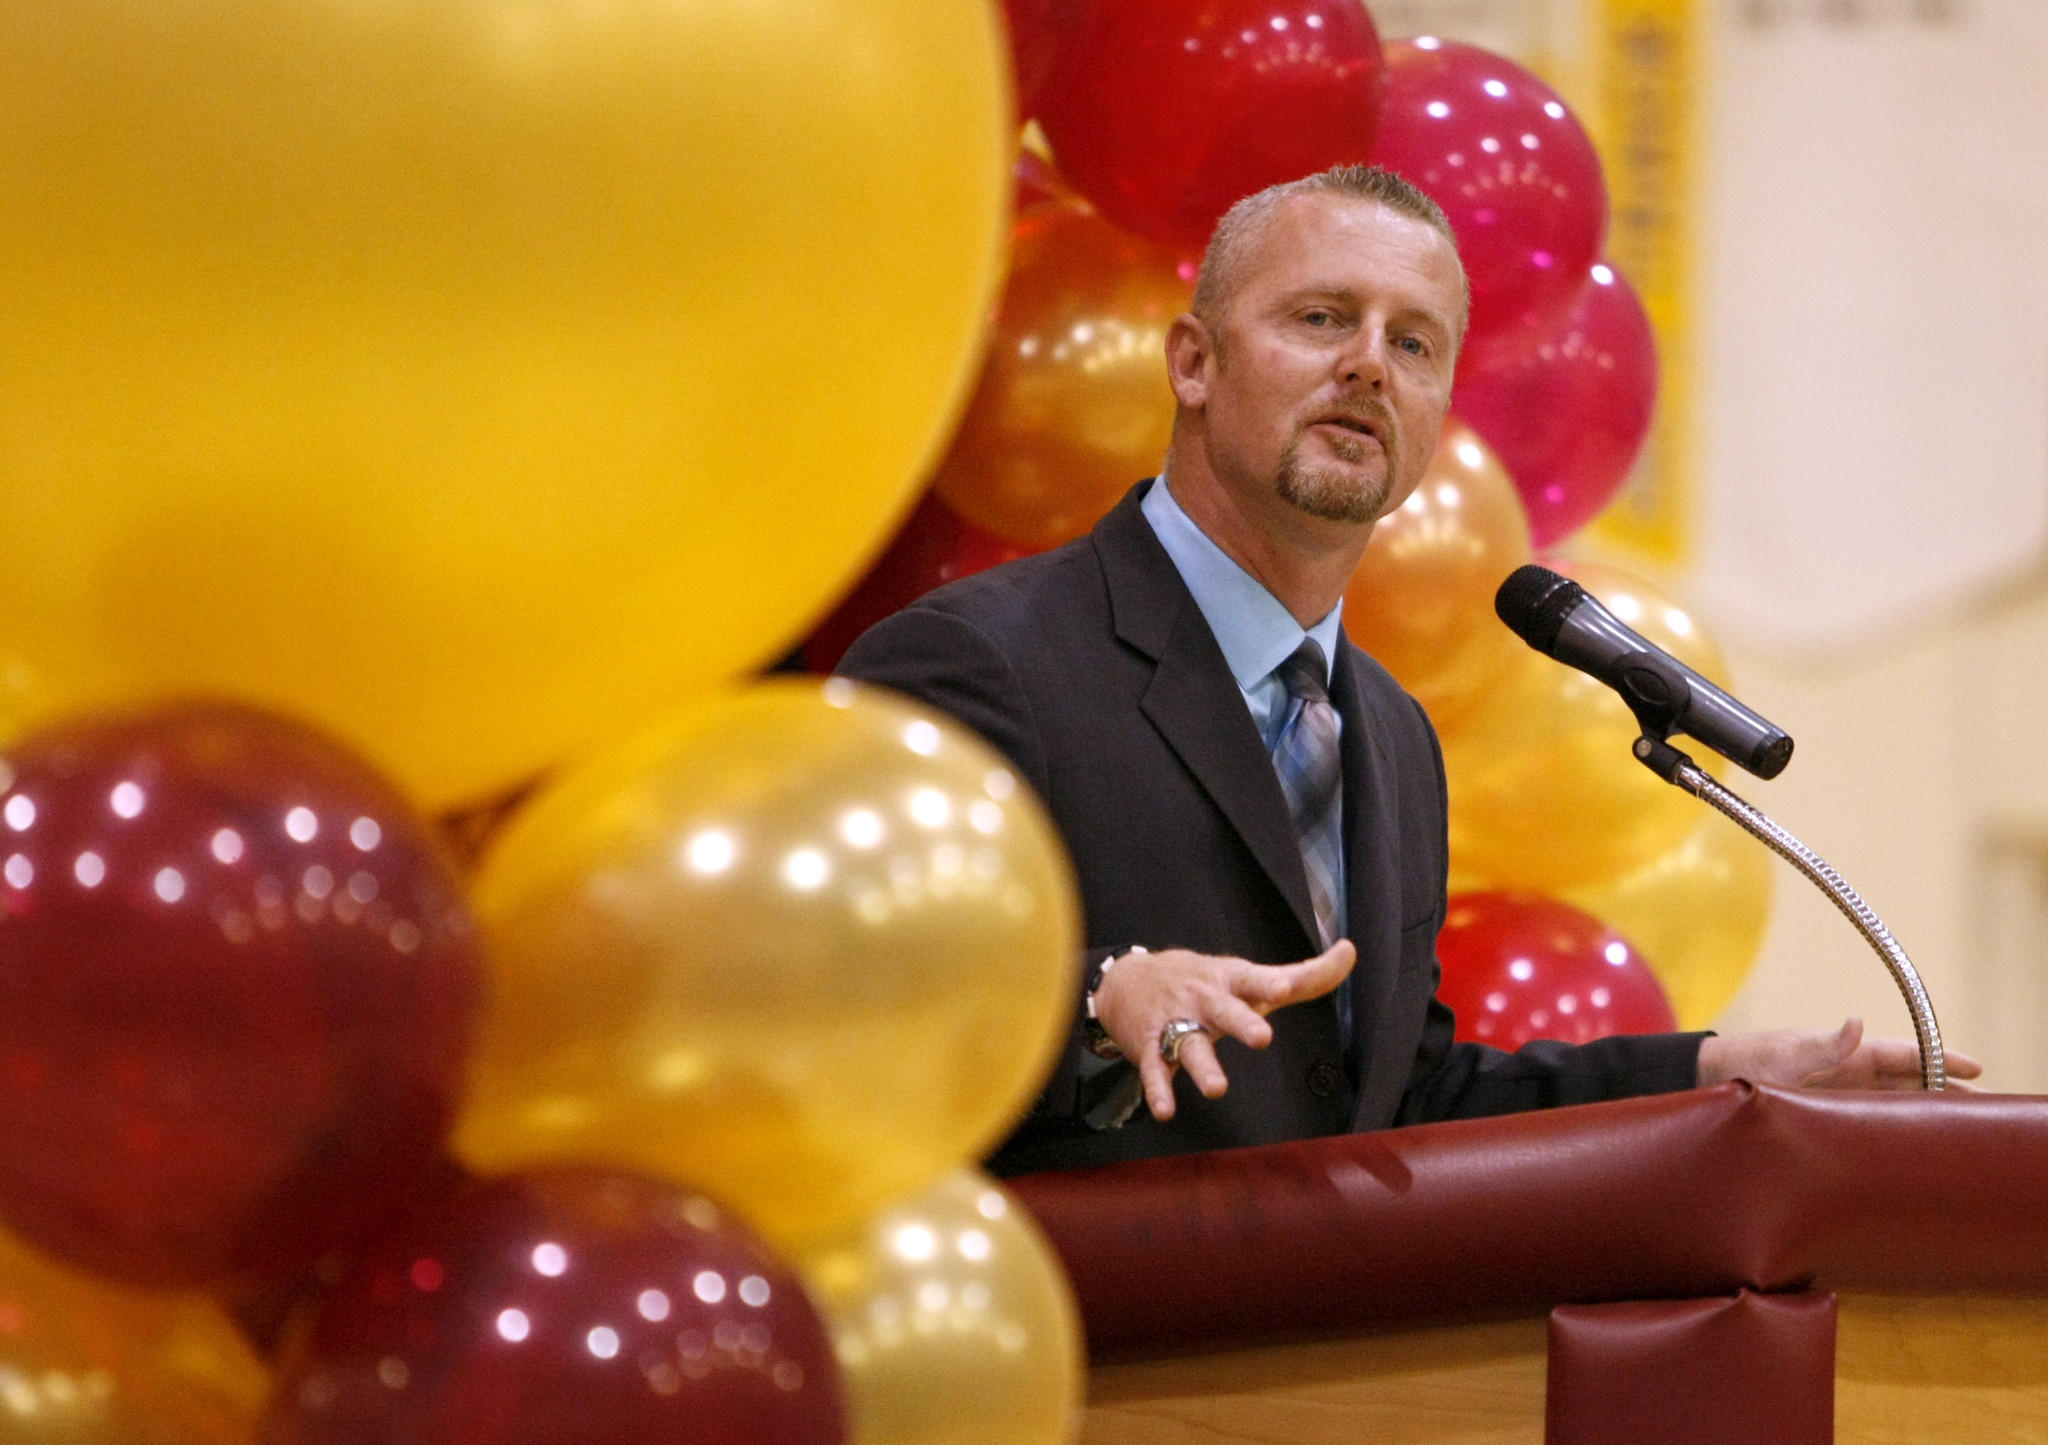 """La Cañada High School 7/8 principal Ryan Zerbel congratulated the students after the school was named a 2014 """"Schools to Watch"""" model middle school at an assembly in the school's gym on Friday, January 31, 2014."""